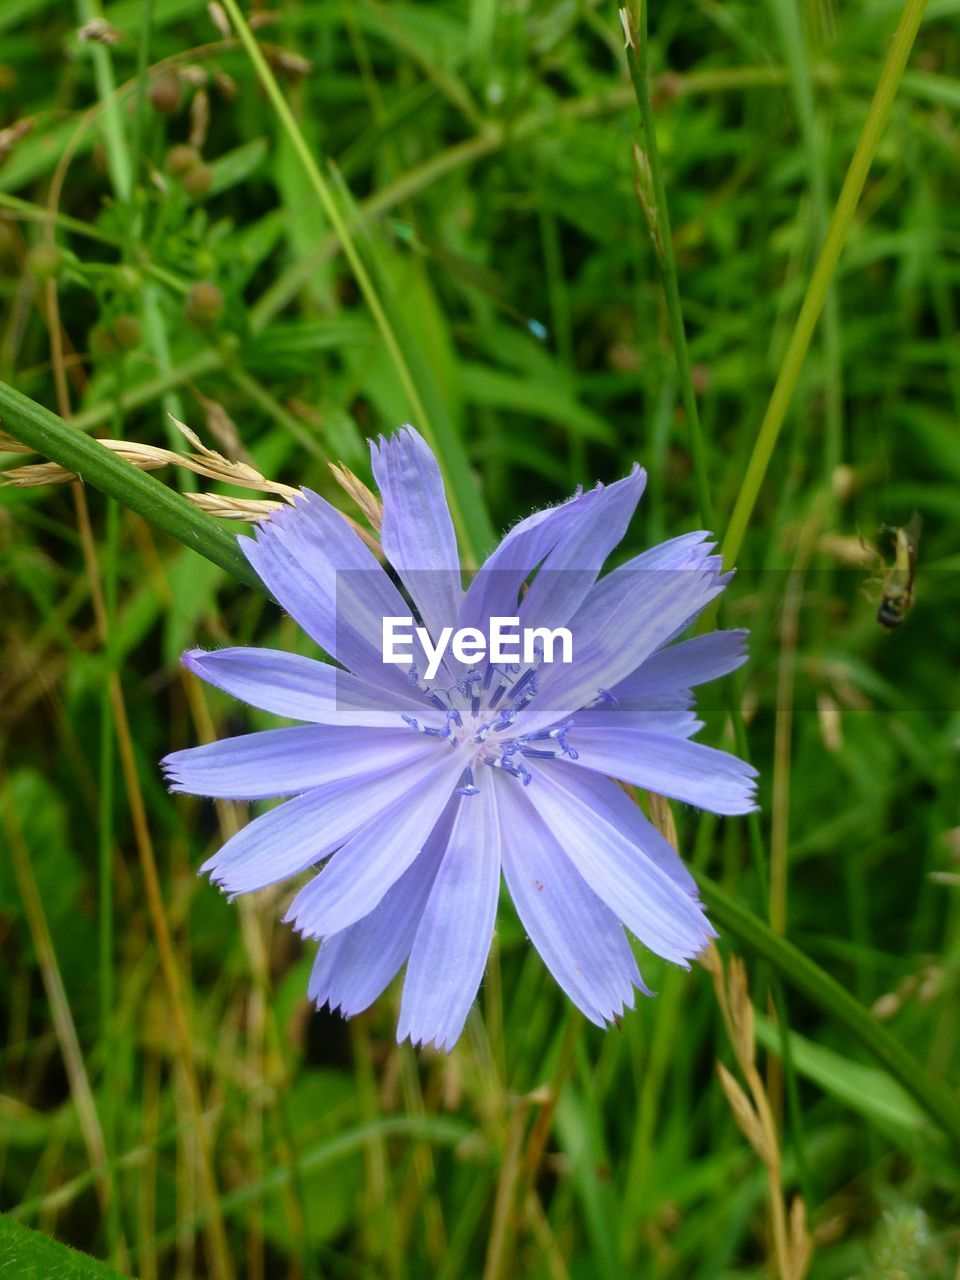 flower, growth, nature, purple, beauty in nature, petal, fragility, individuality, plant, blooming, no people, freshness, flower head, outdoors, grass, close-up, day